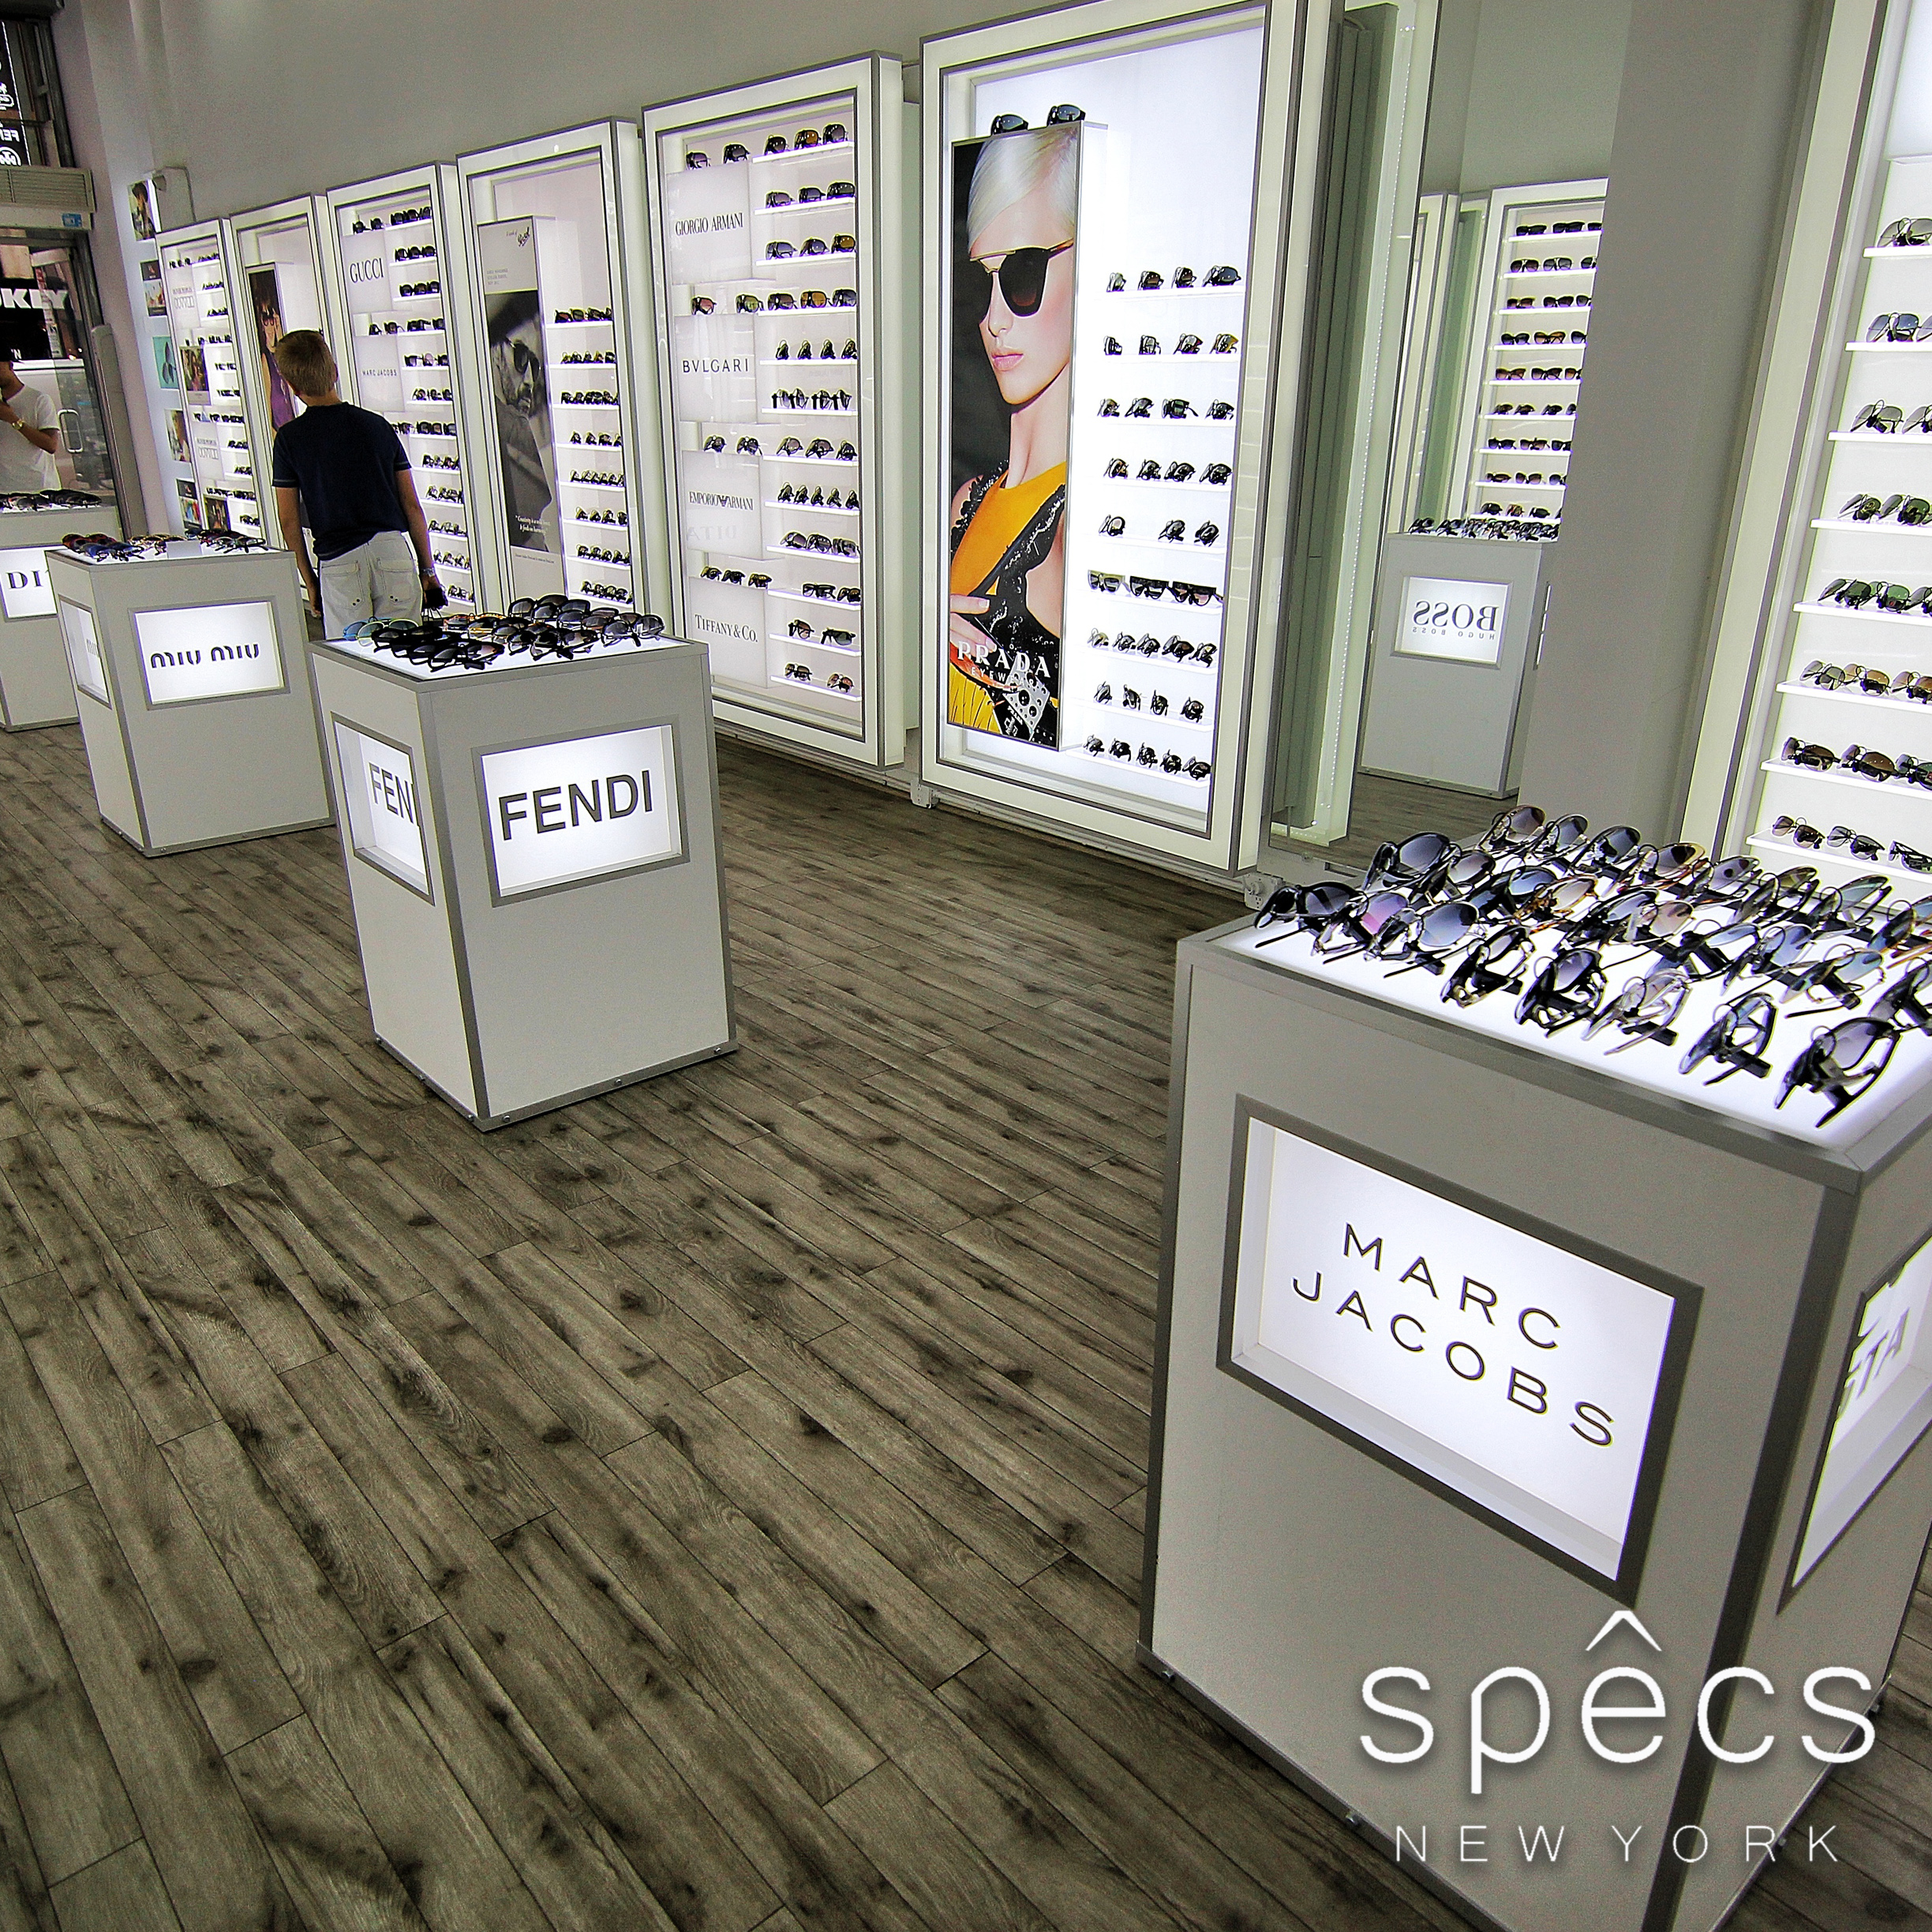 Specs New York interior